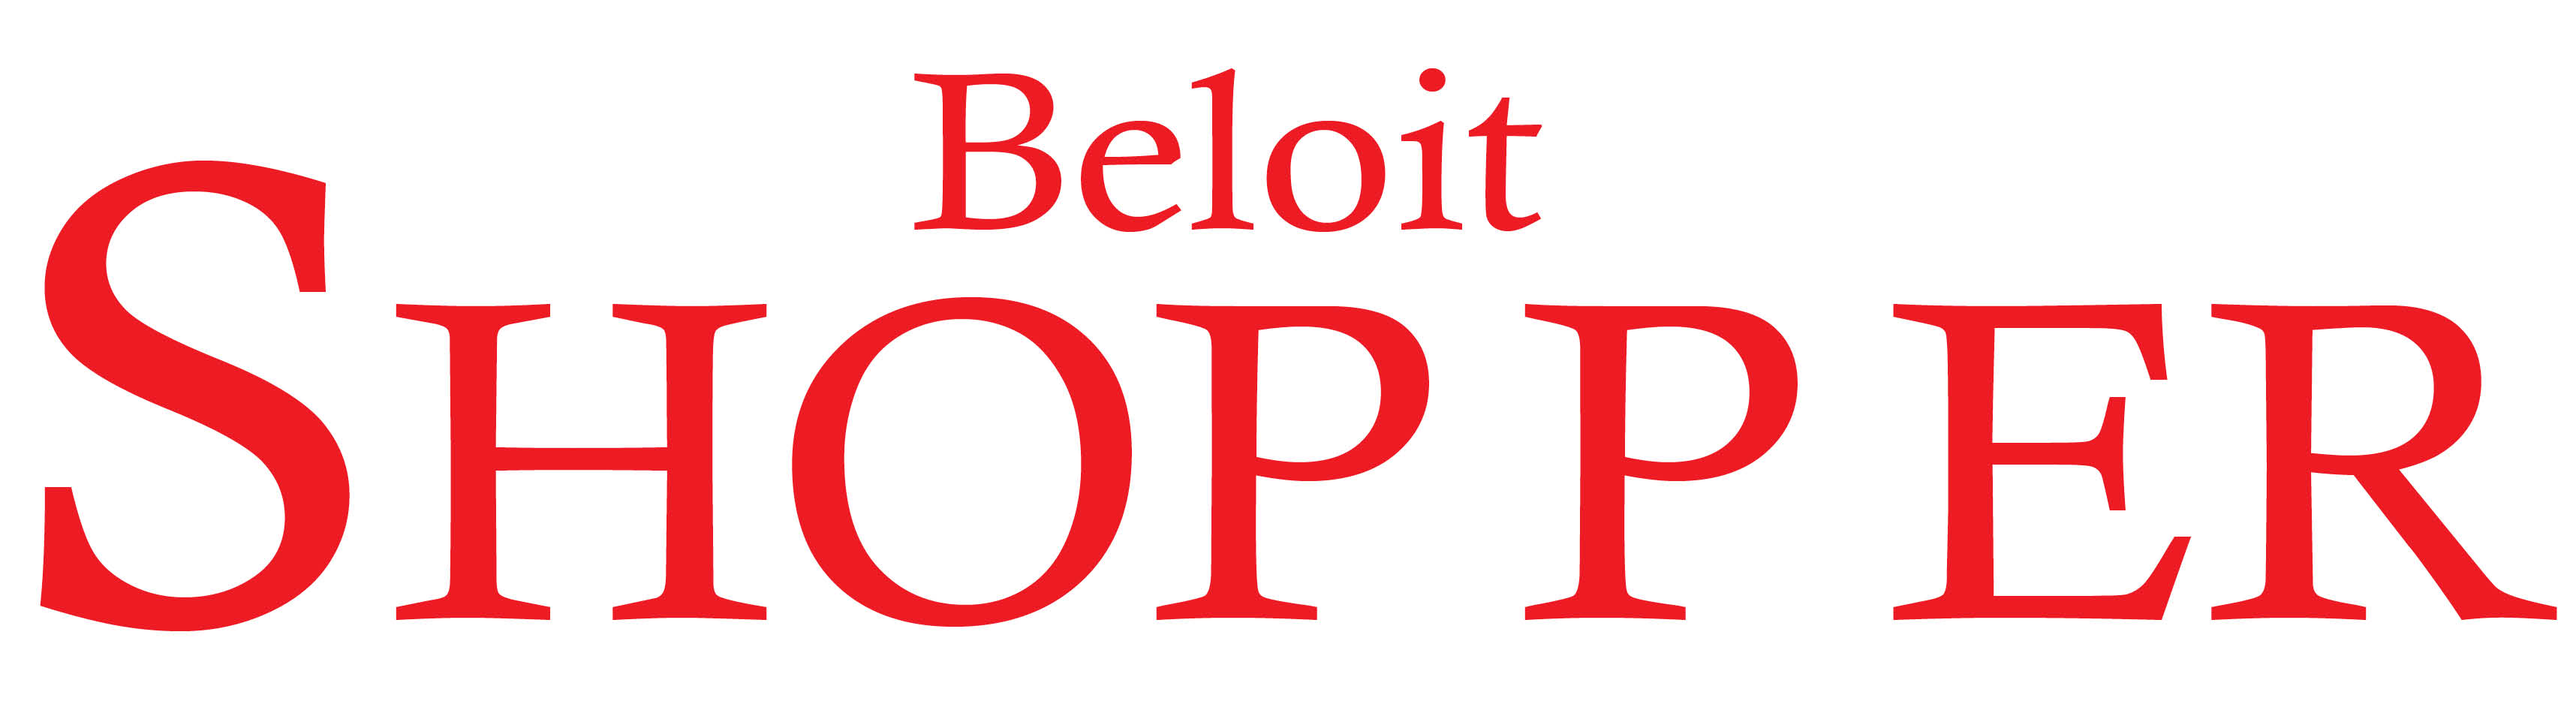 7/13/17 Beloit Shopper